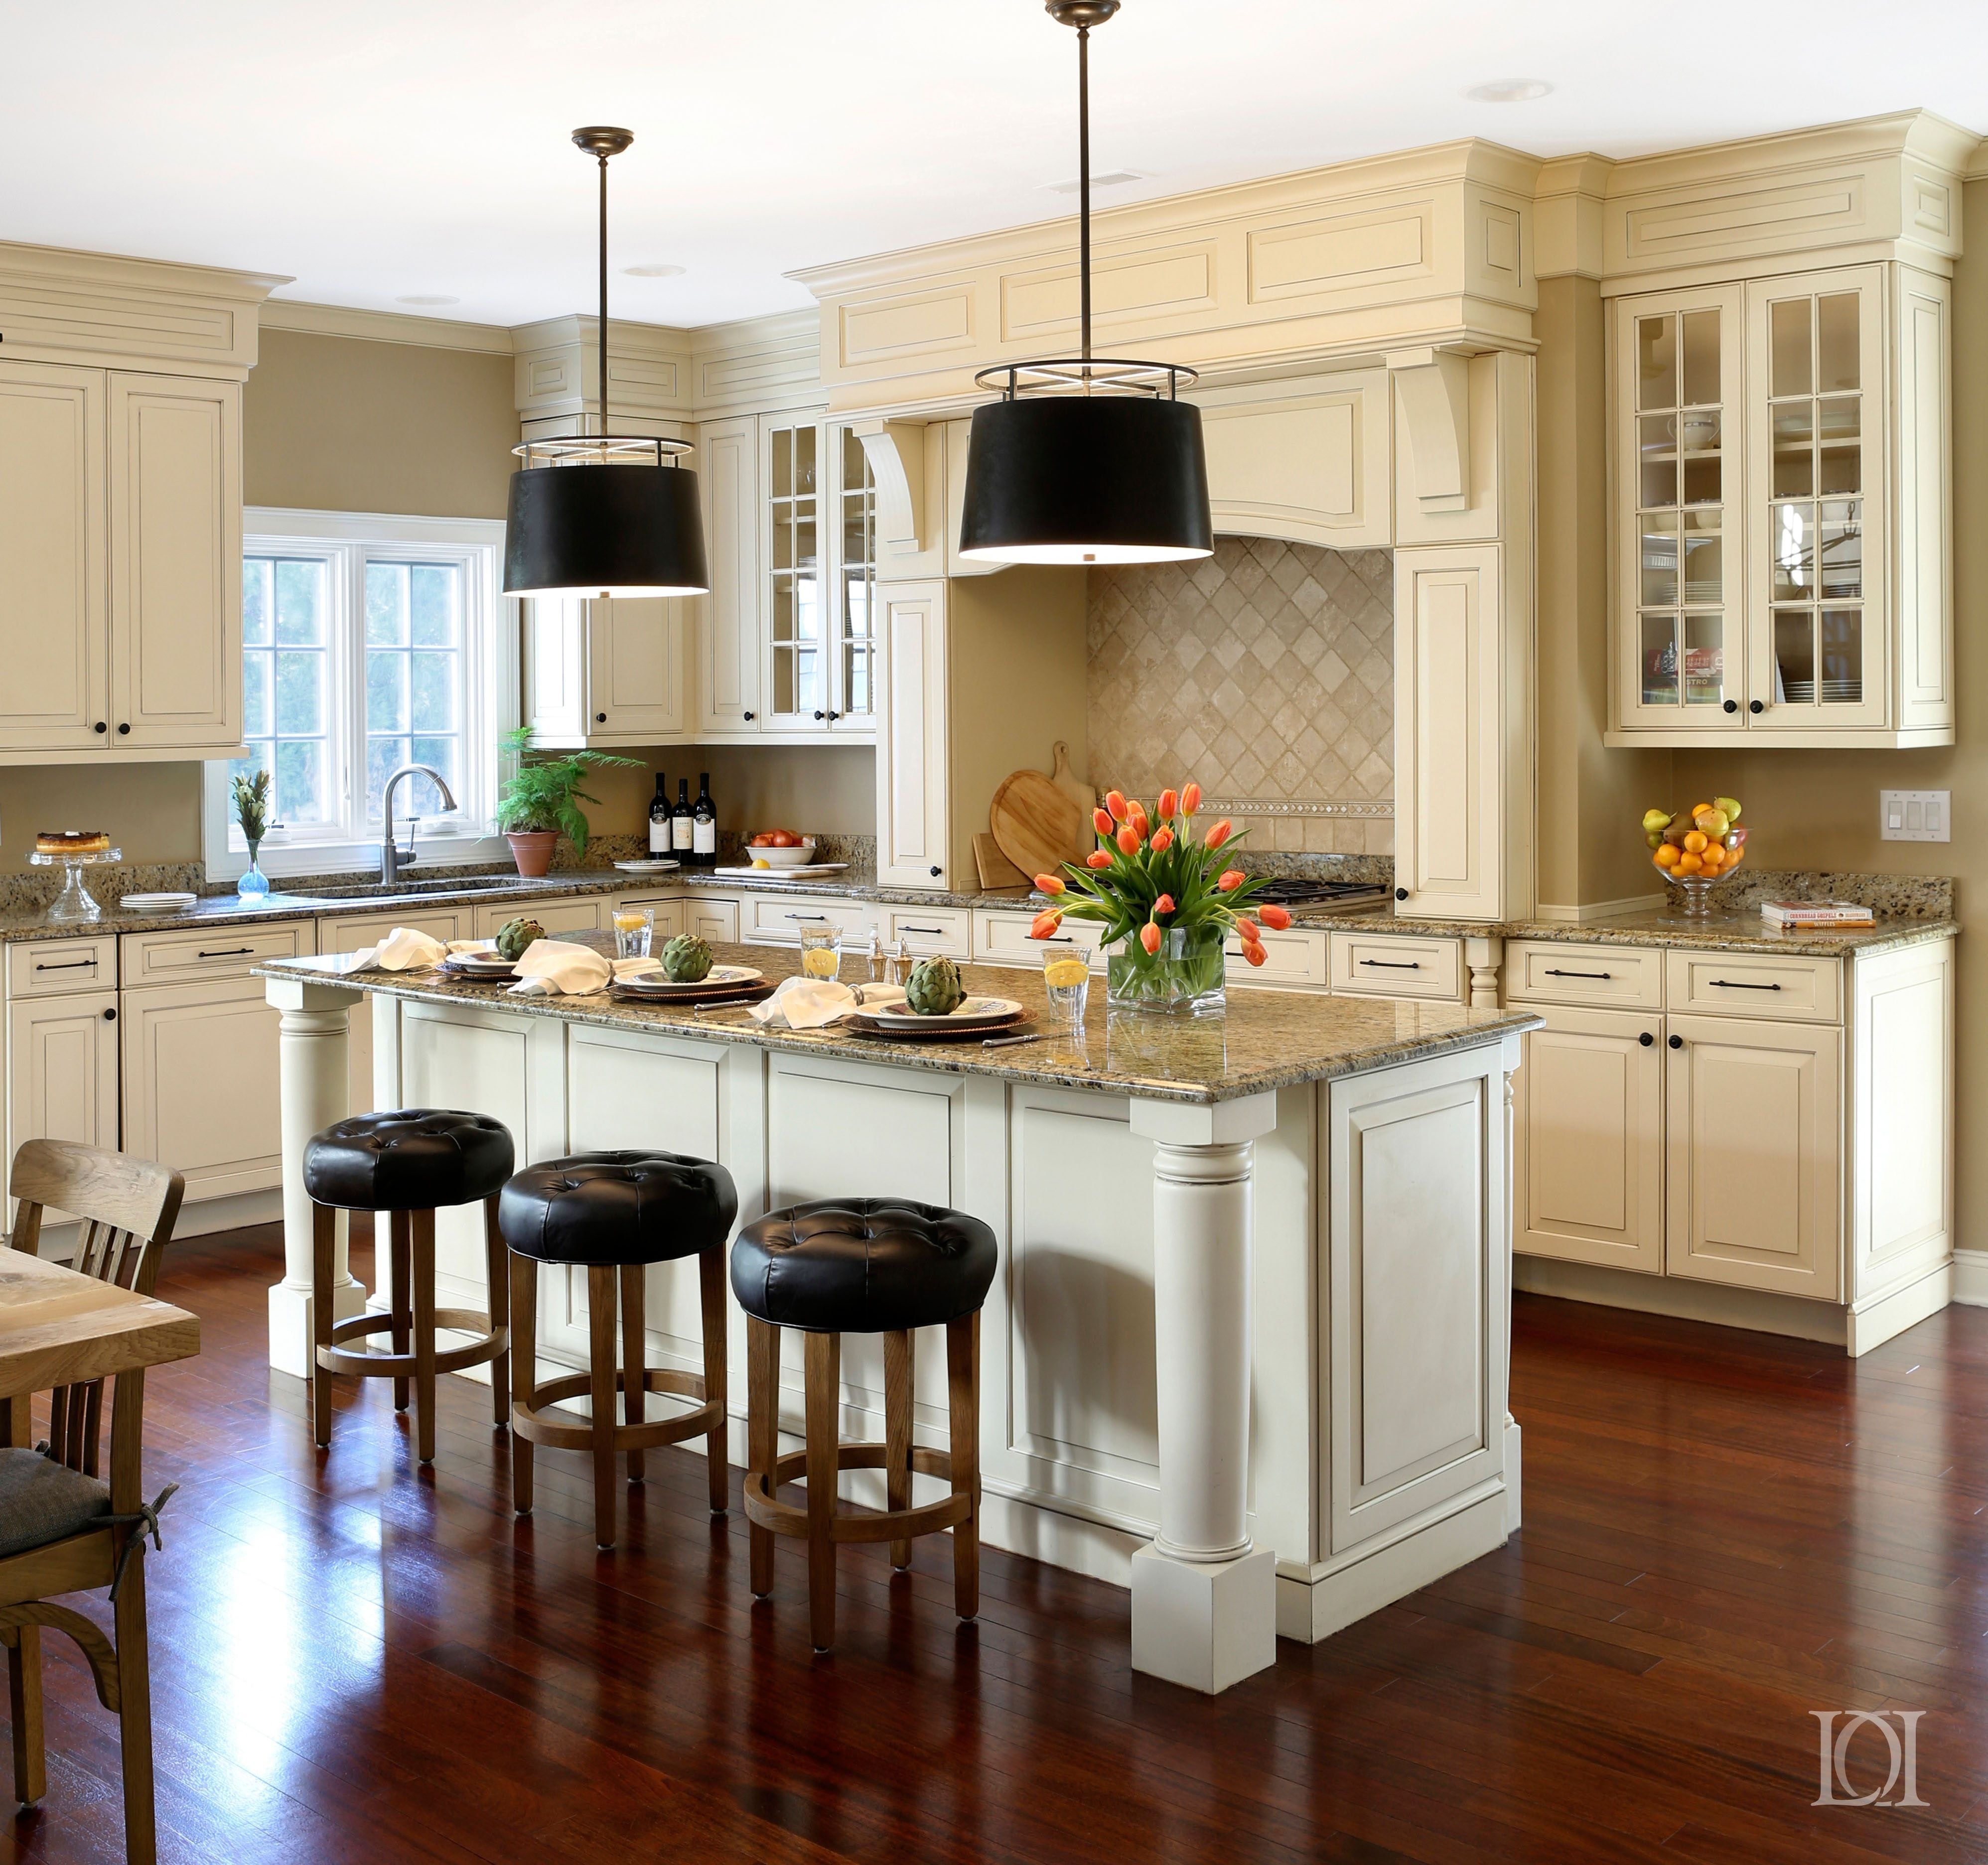 Kitchen refresh with Brazilian cherry floors and cream cabinets ...